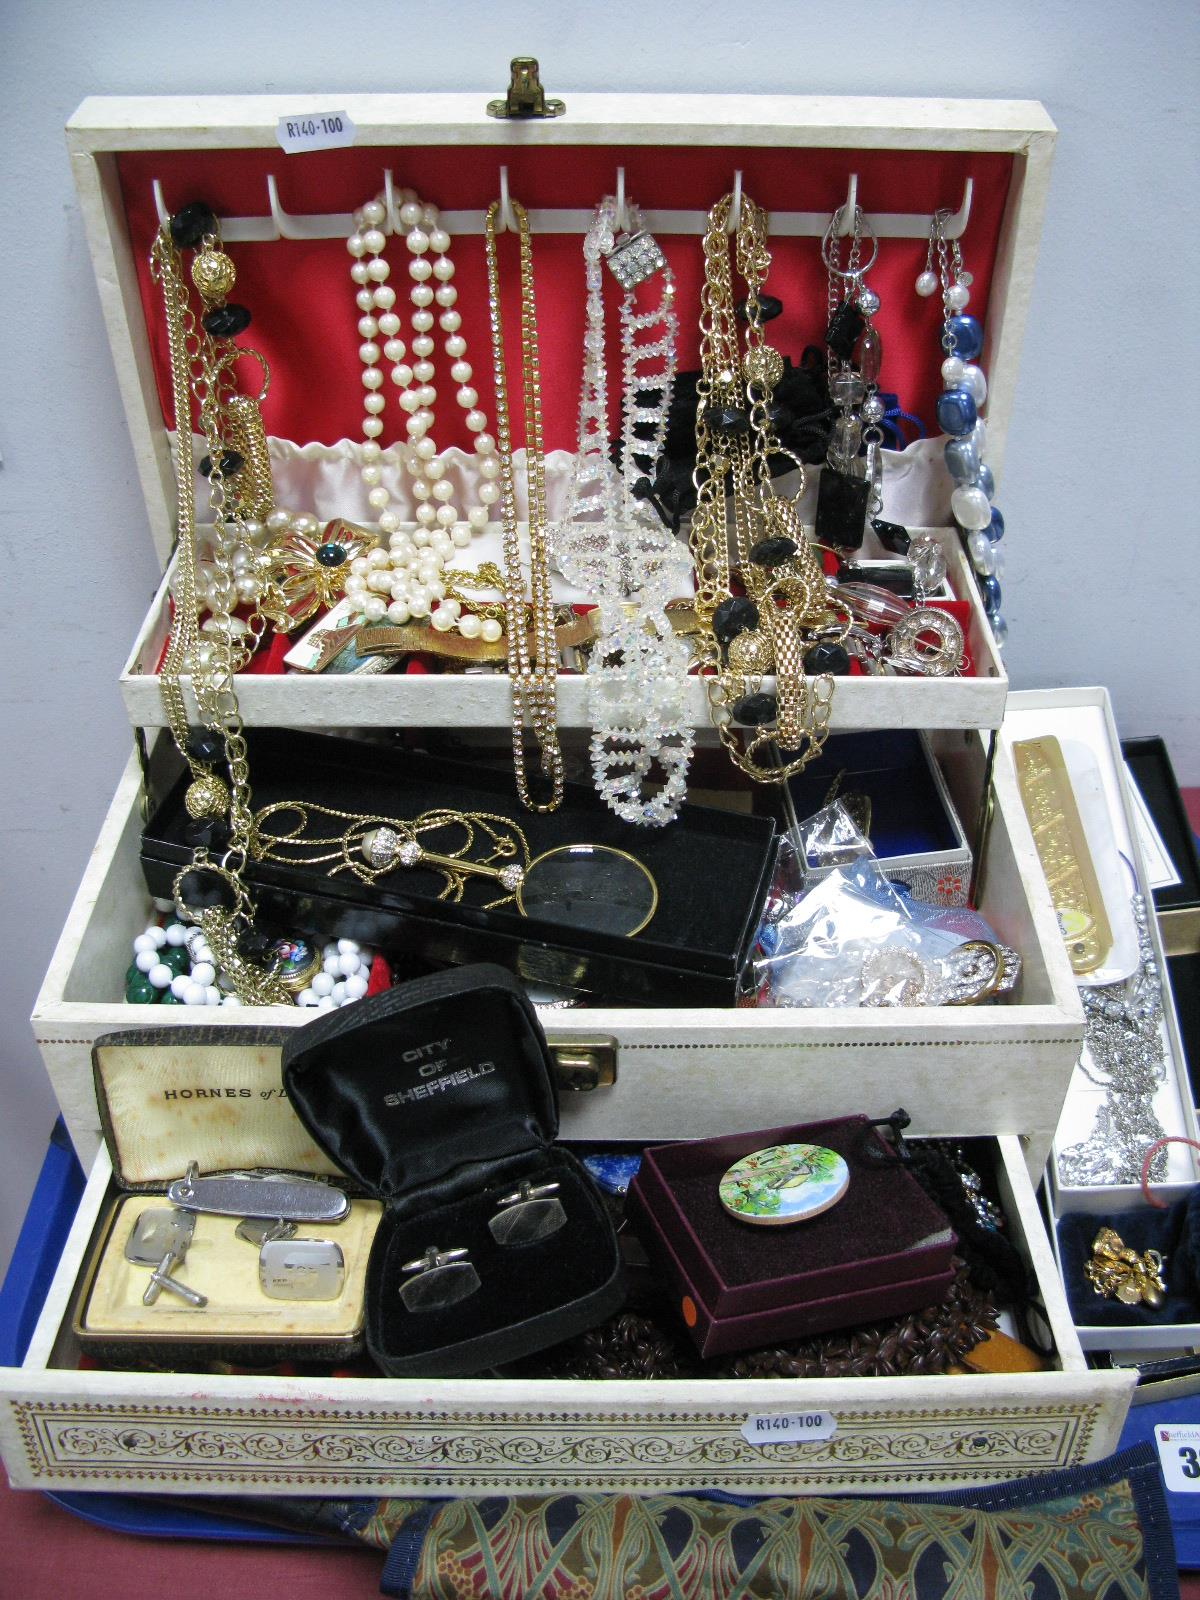 Lot 326 - A Mixed Lot of Assorted Costume Jewellery, including ladies wristwatches, bead necklaces,